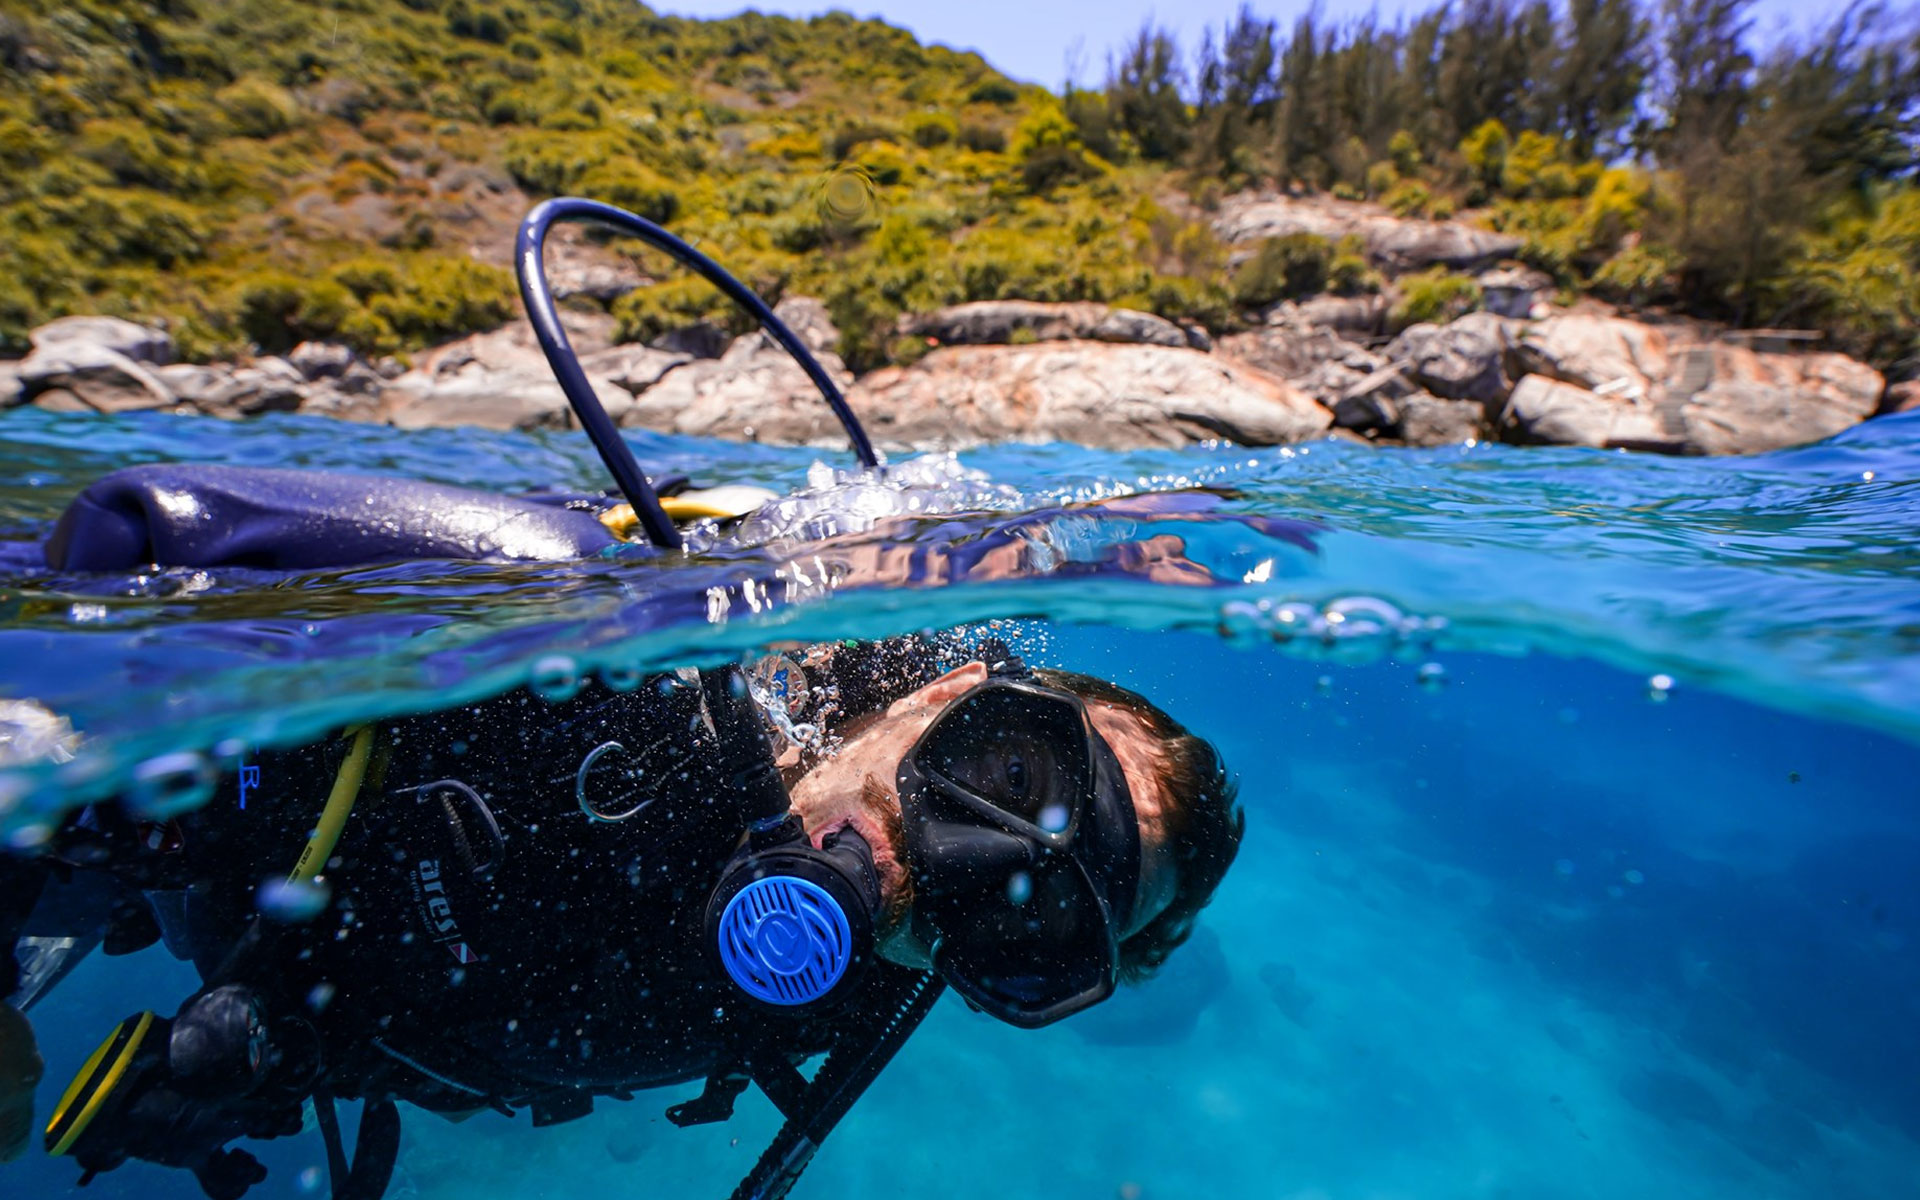 Snorkeling and Diving Spots